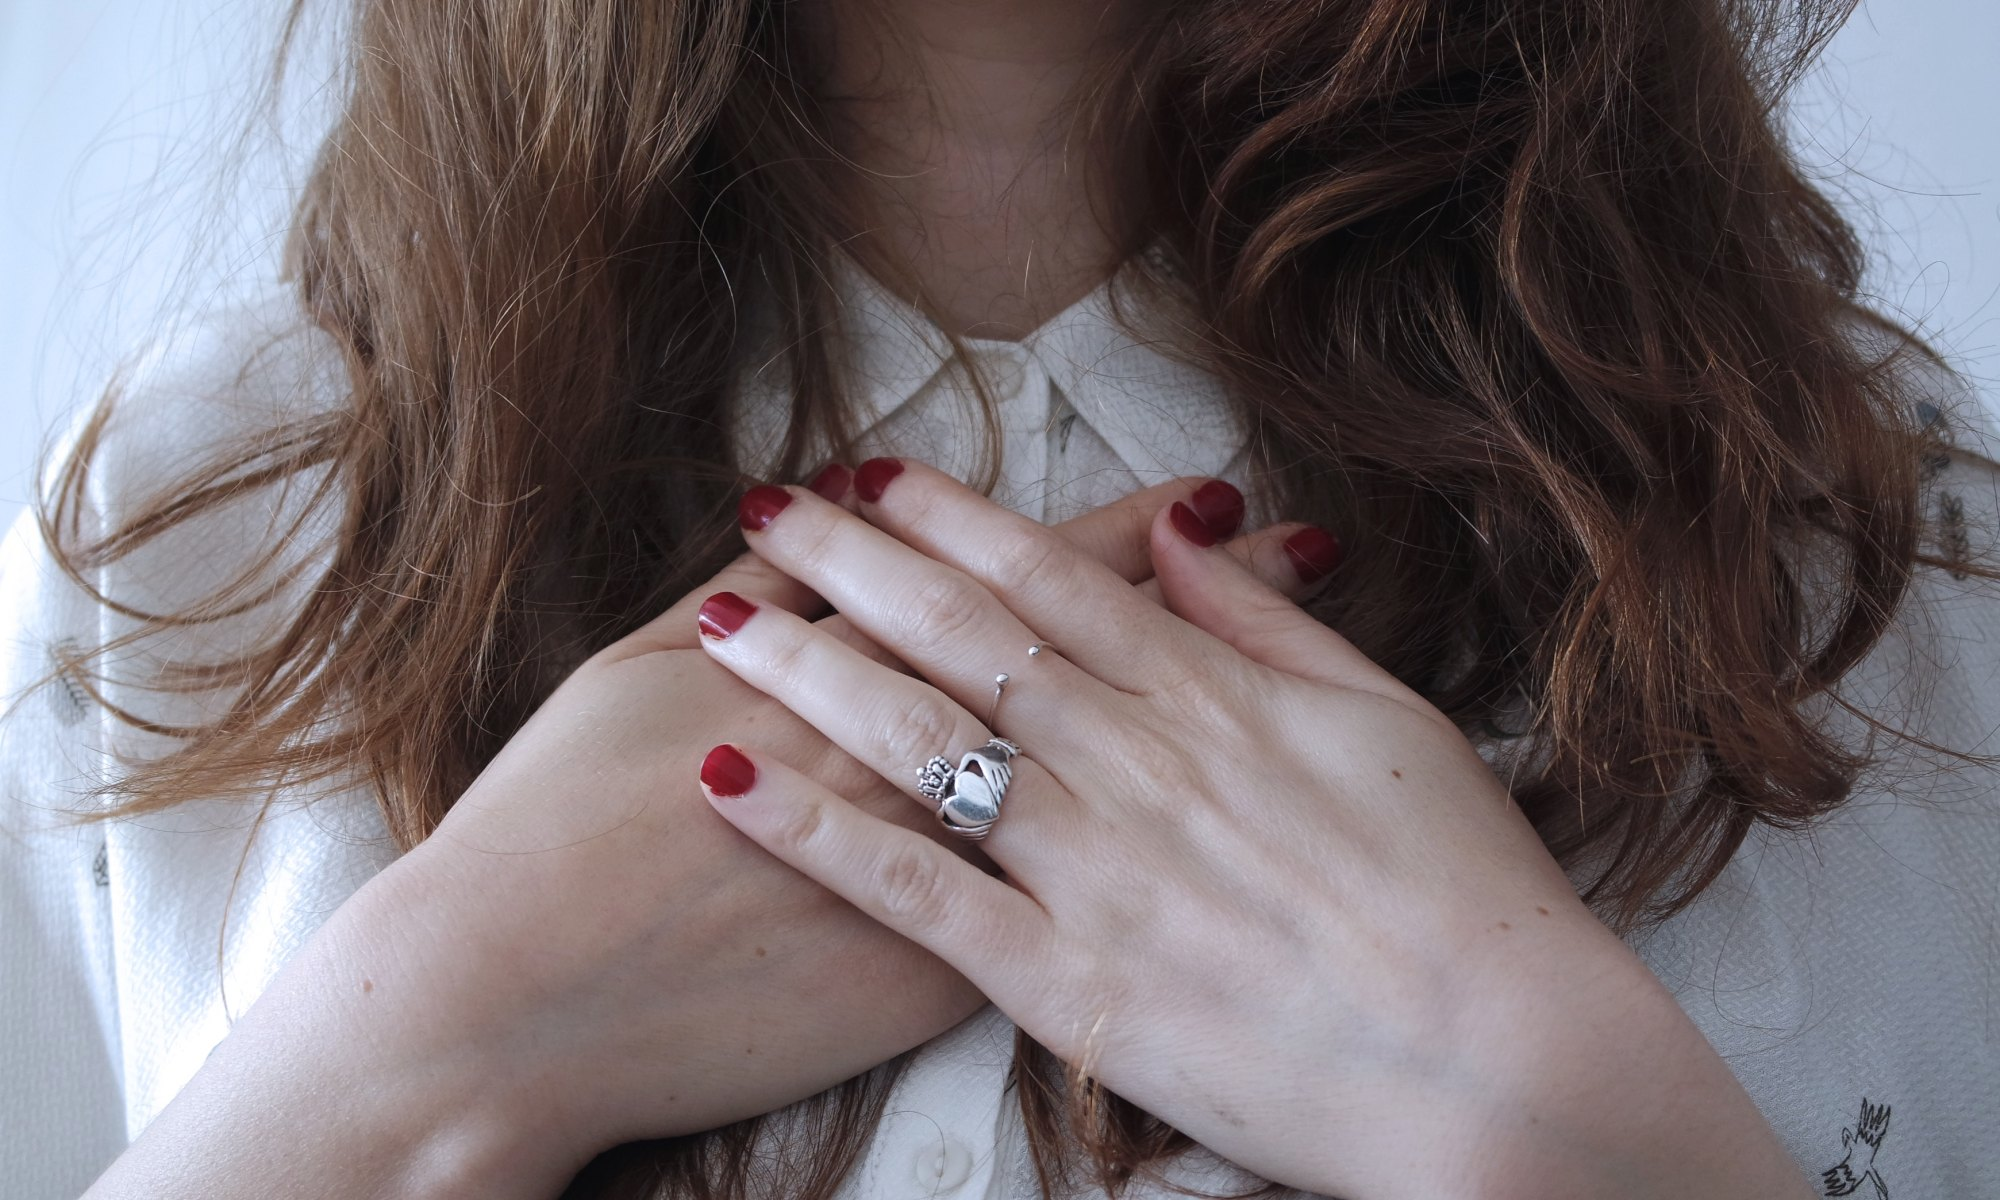 Brunette woman expressing self-love with her hands on her chest